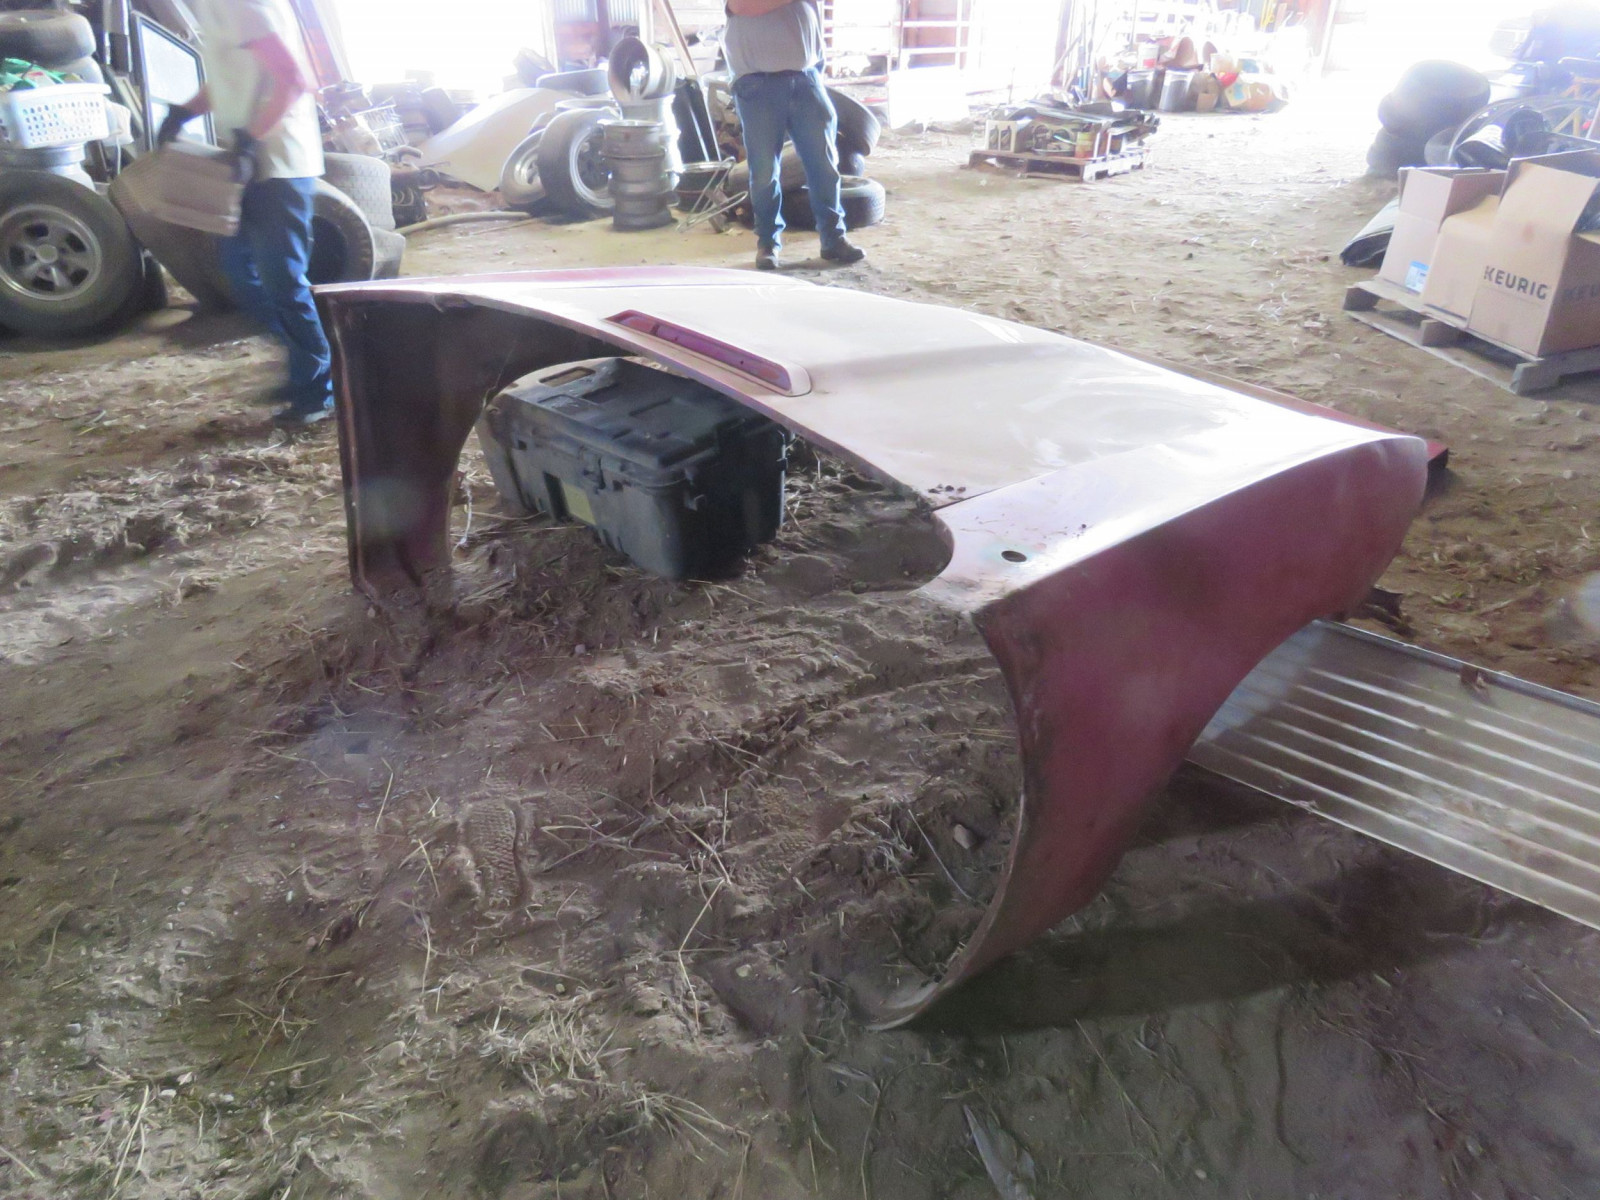 Front Clip for 1970 Plymouth Road runner in Original Pink with Decklid - Image 2